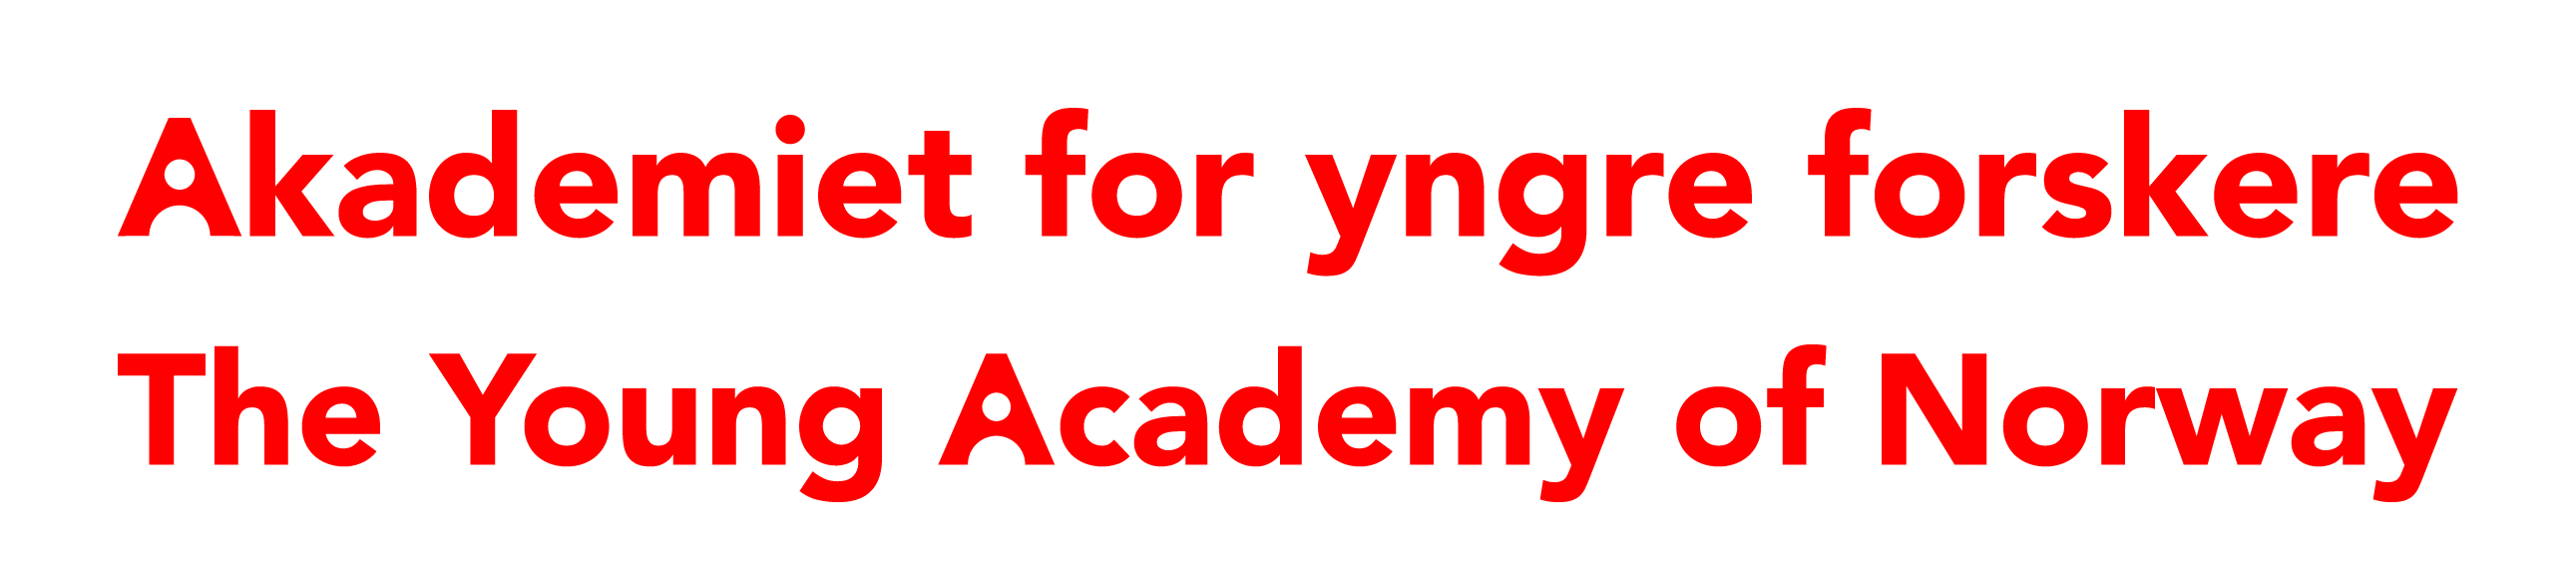 Akademiet_for_yngre_forskere_The_Young_Academy_of_